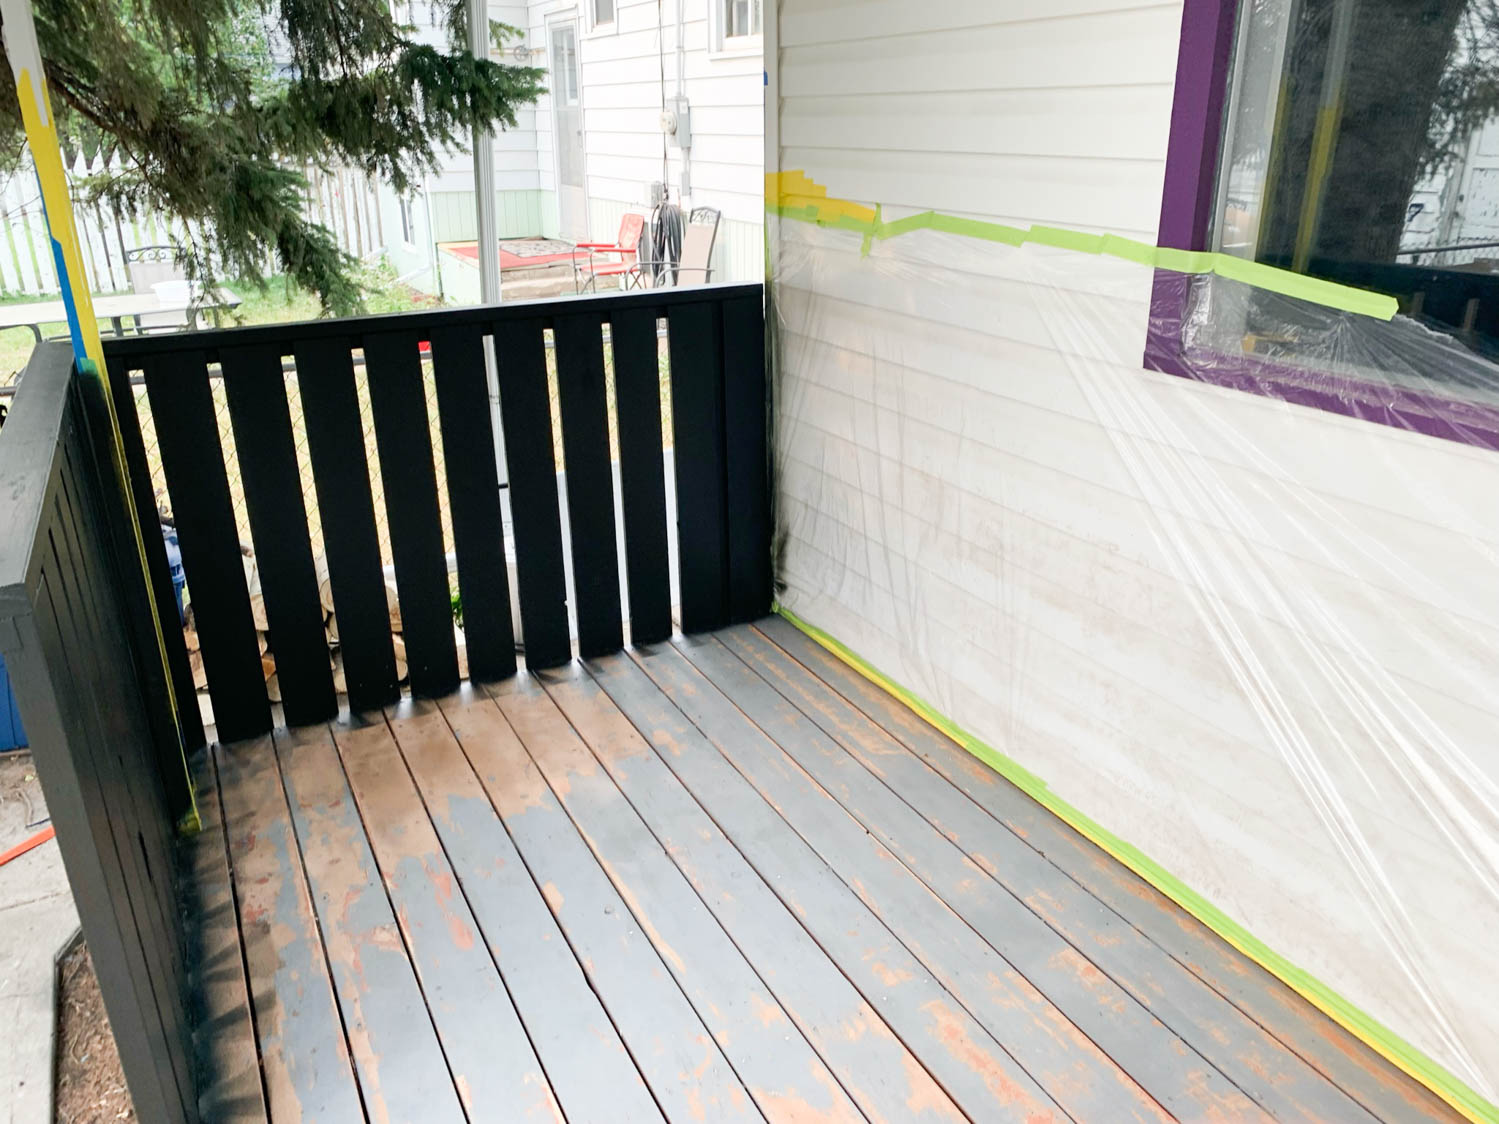 Painting a deck railing with a paint sprayer